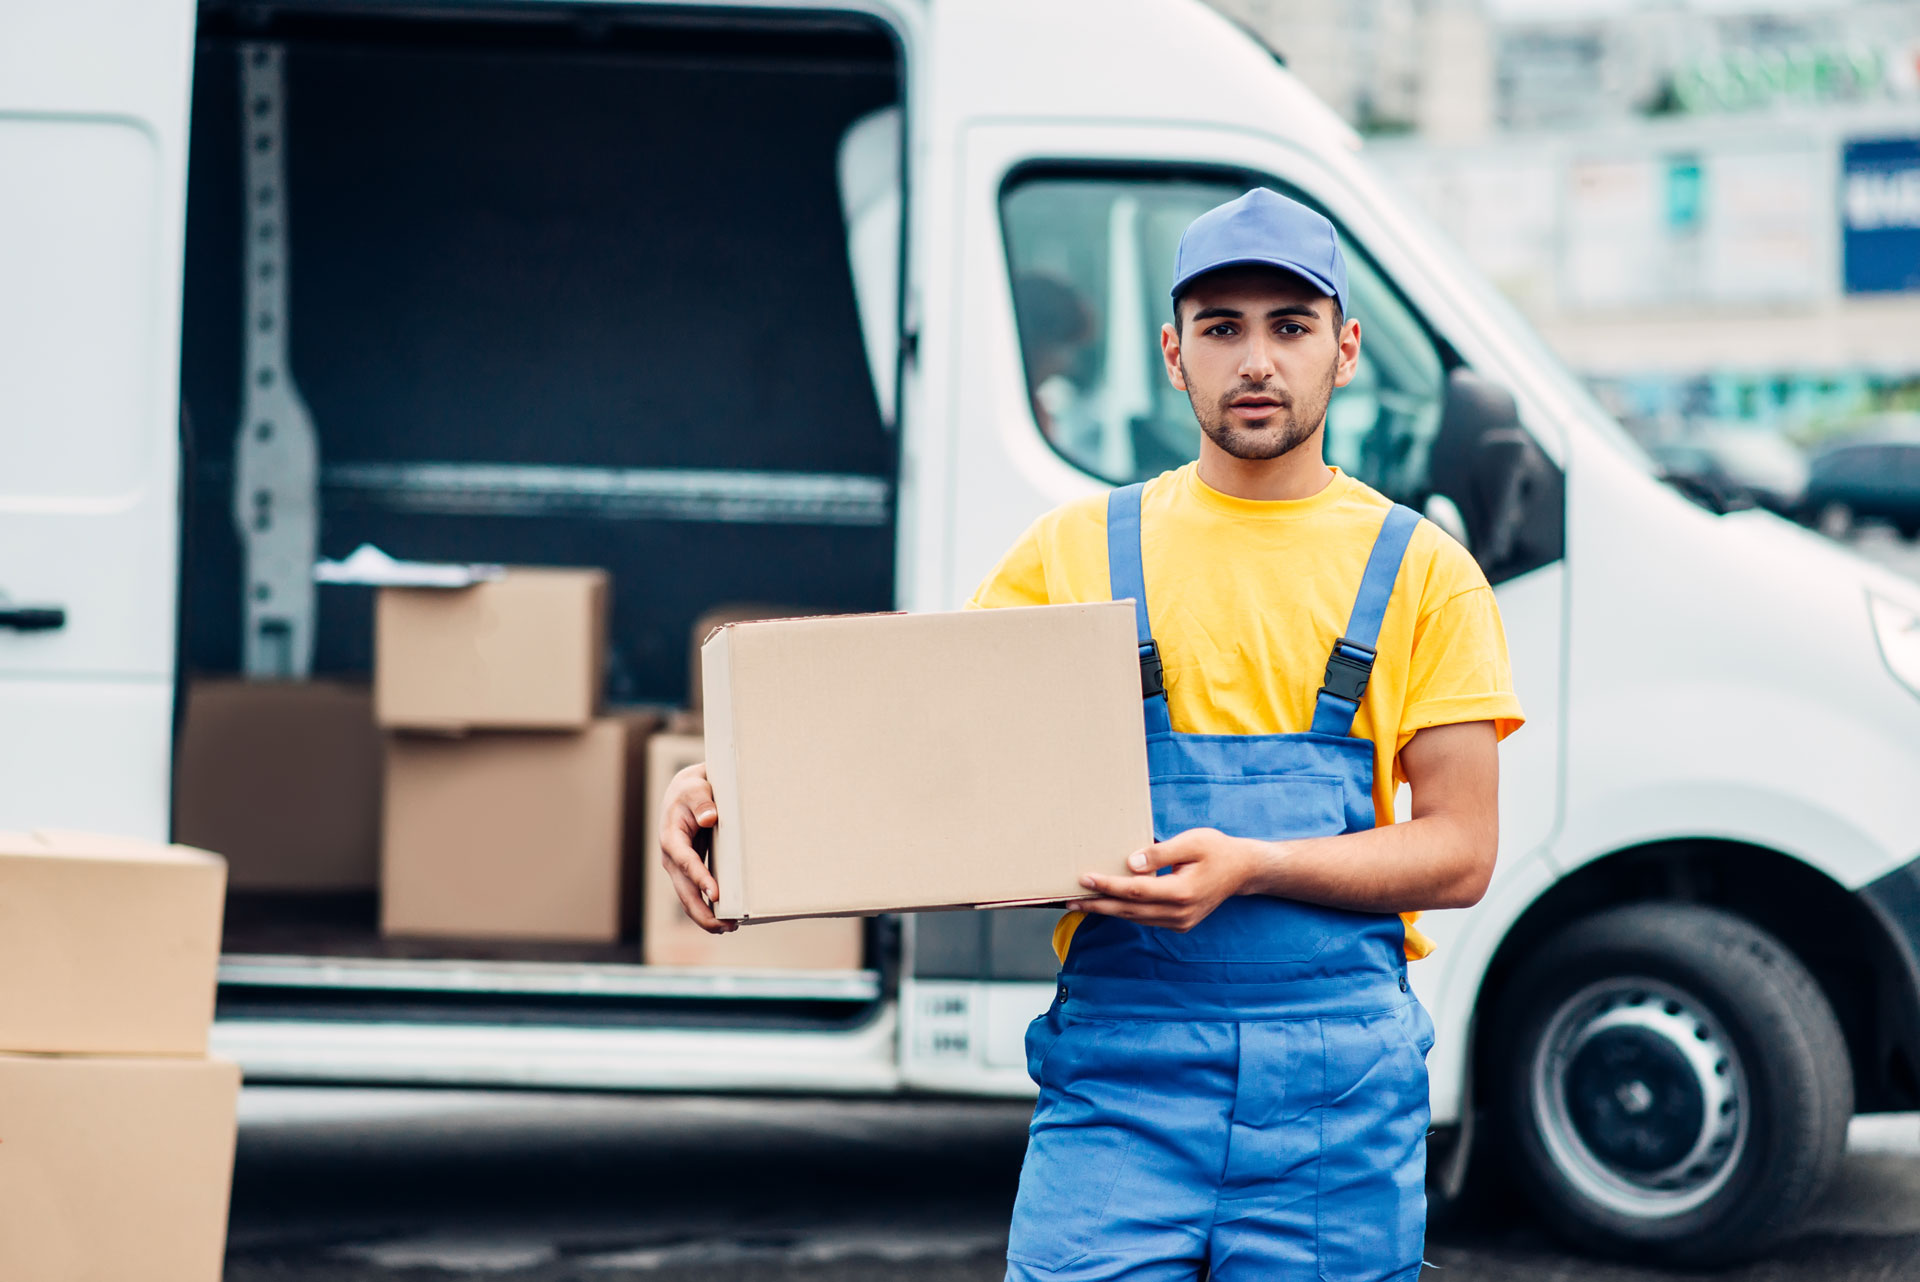 cargo-delivery-service-male-courier-unload-truck-P2CJTLY.jpg